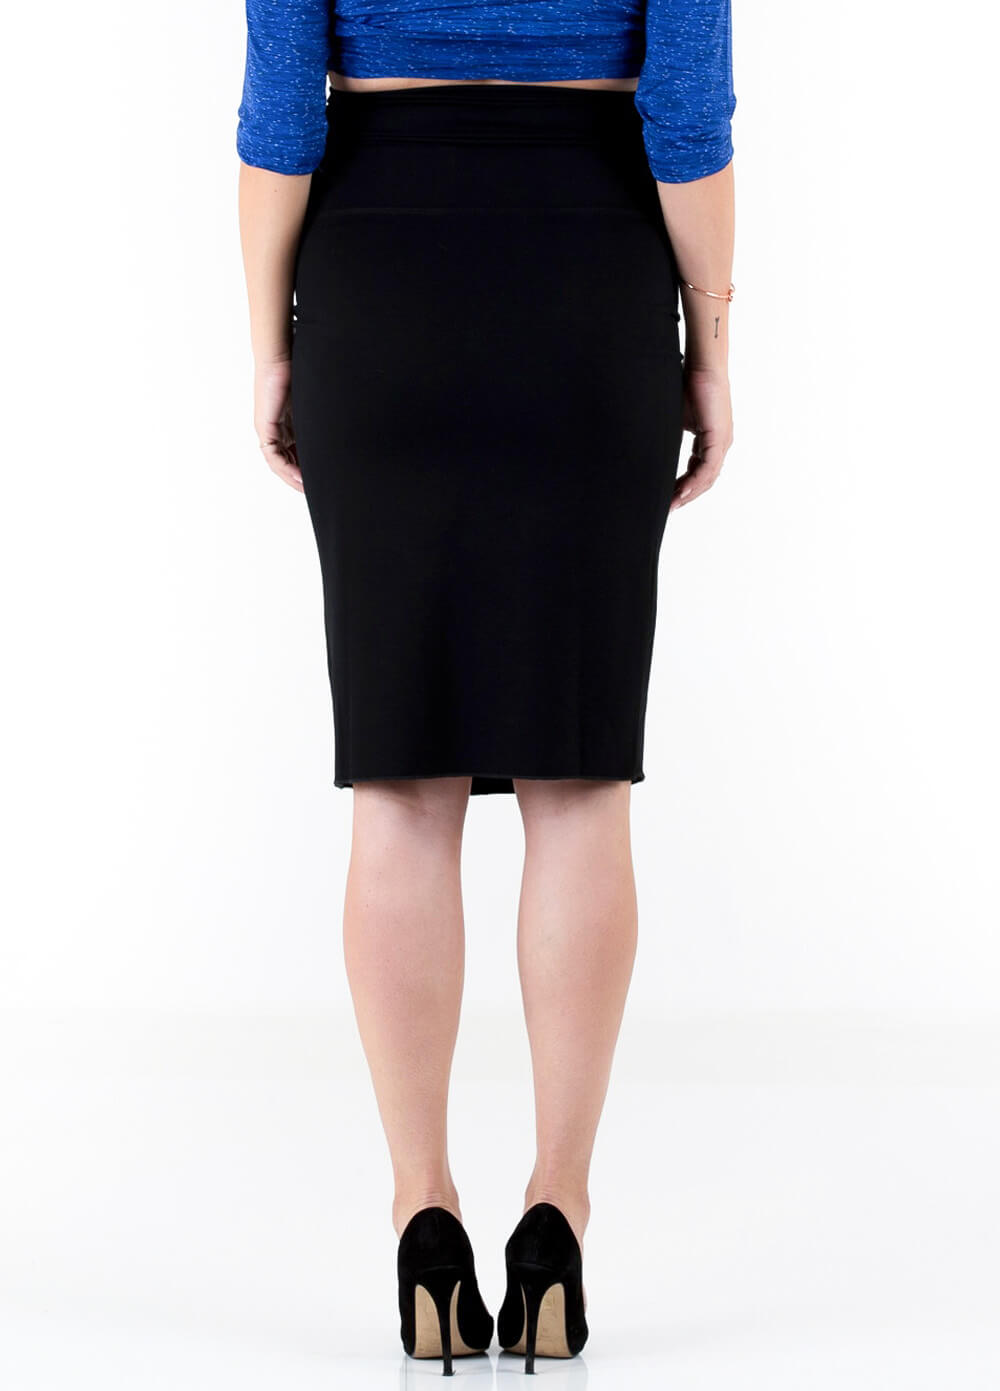 Floressa - Laci Ponte Black Maternity Pencil Skirt | Queen Bee